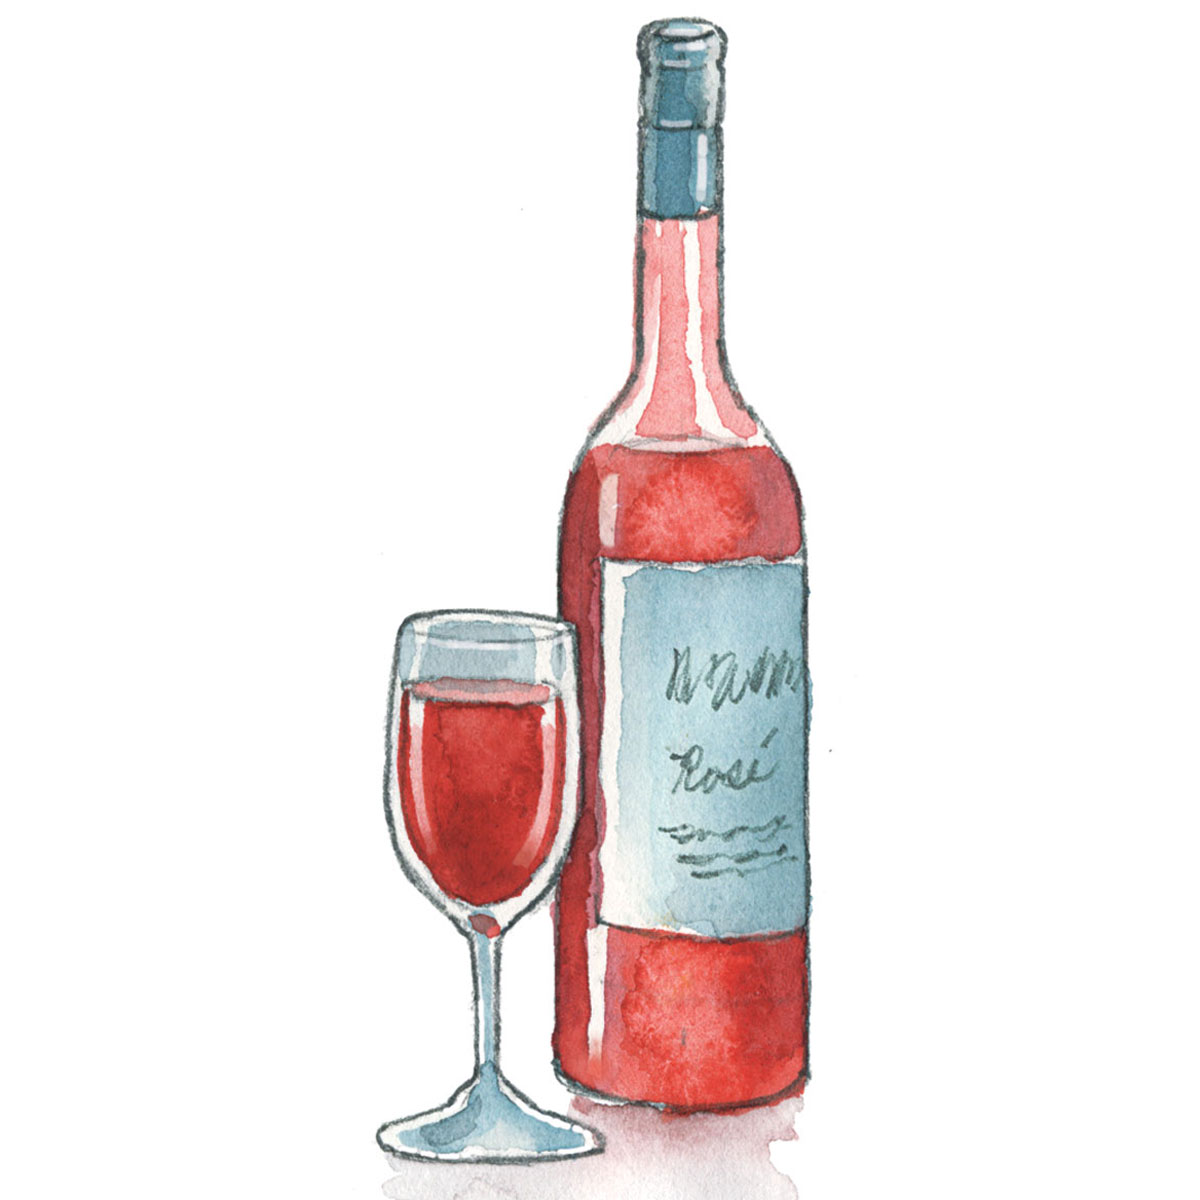 winter rosé wine